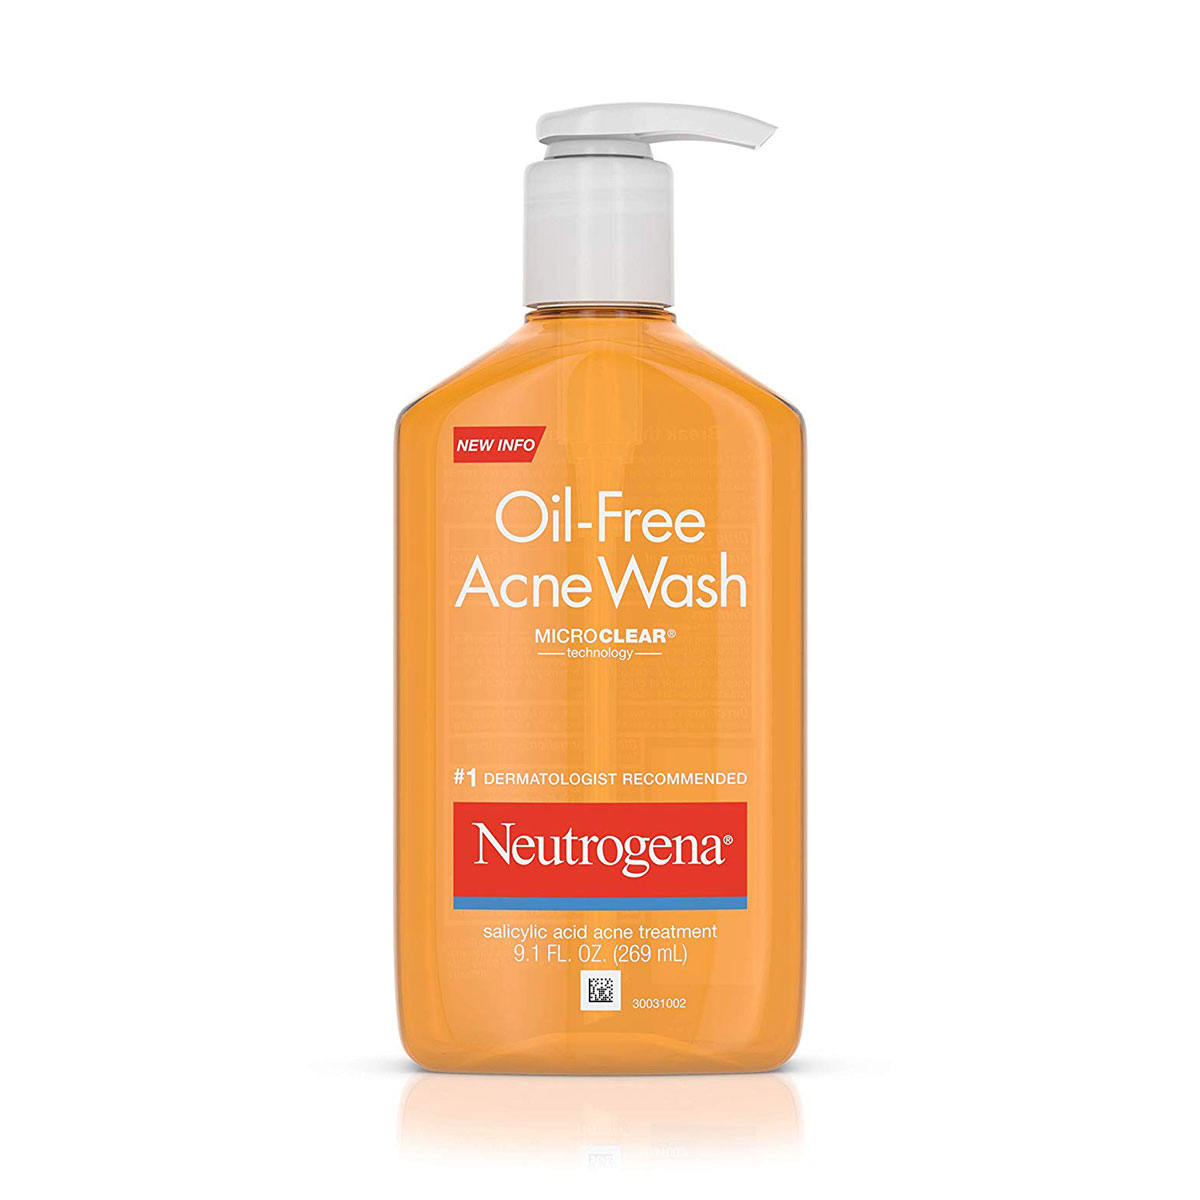 neutrogena oil free acne fighting facial cleanser with salicylic acid acne treatment medicine daily oil free acne face wash for acne prone skin with salicylic acid acne medicine